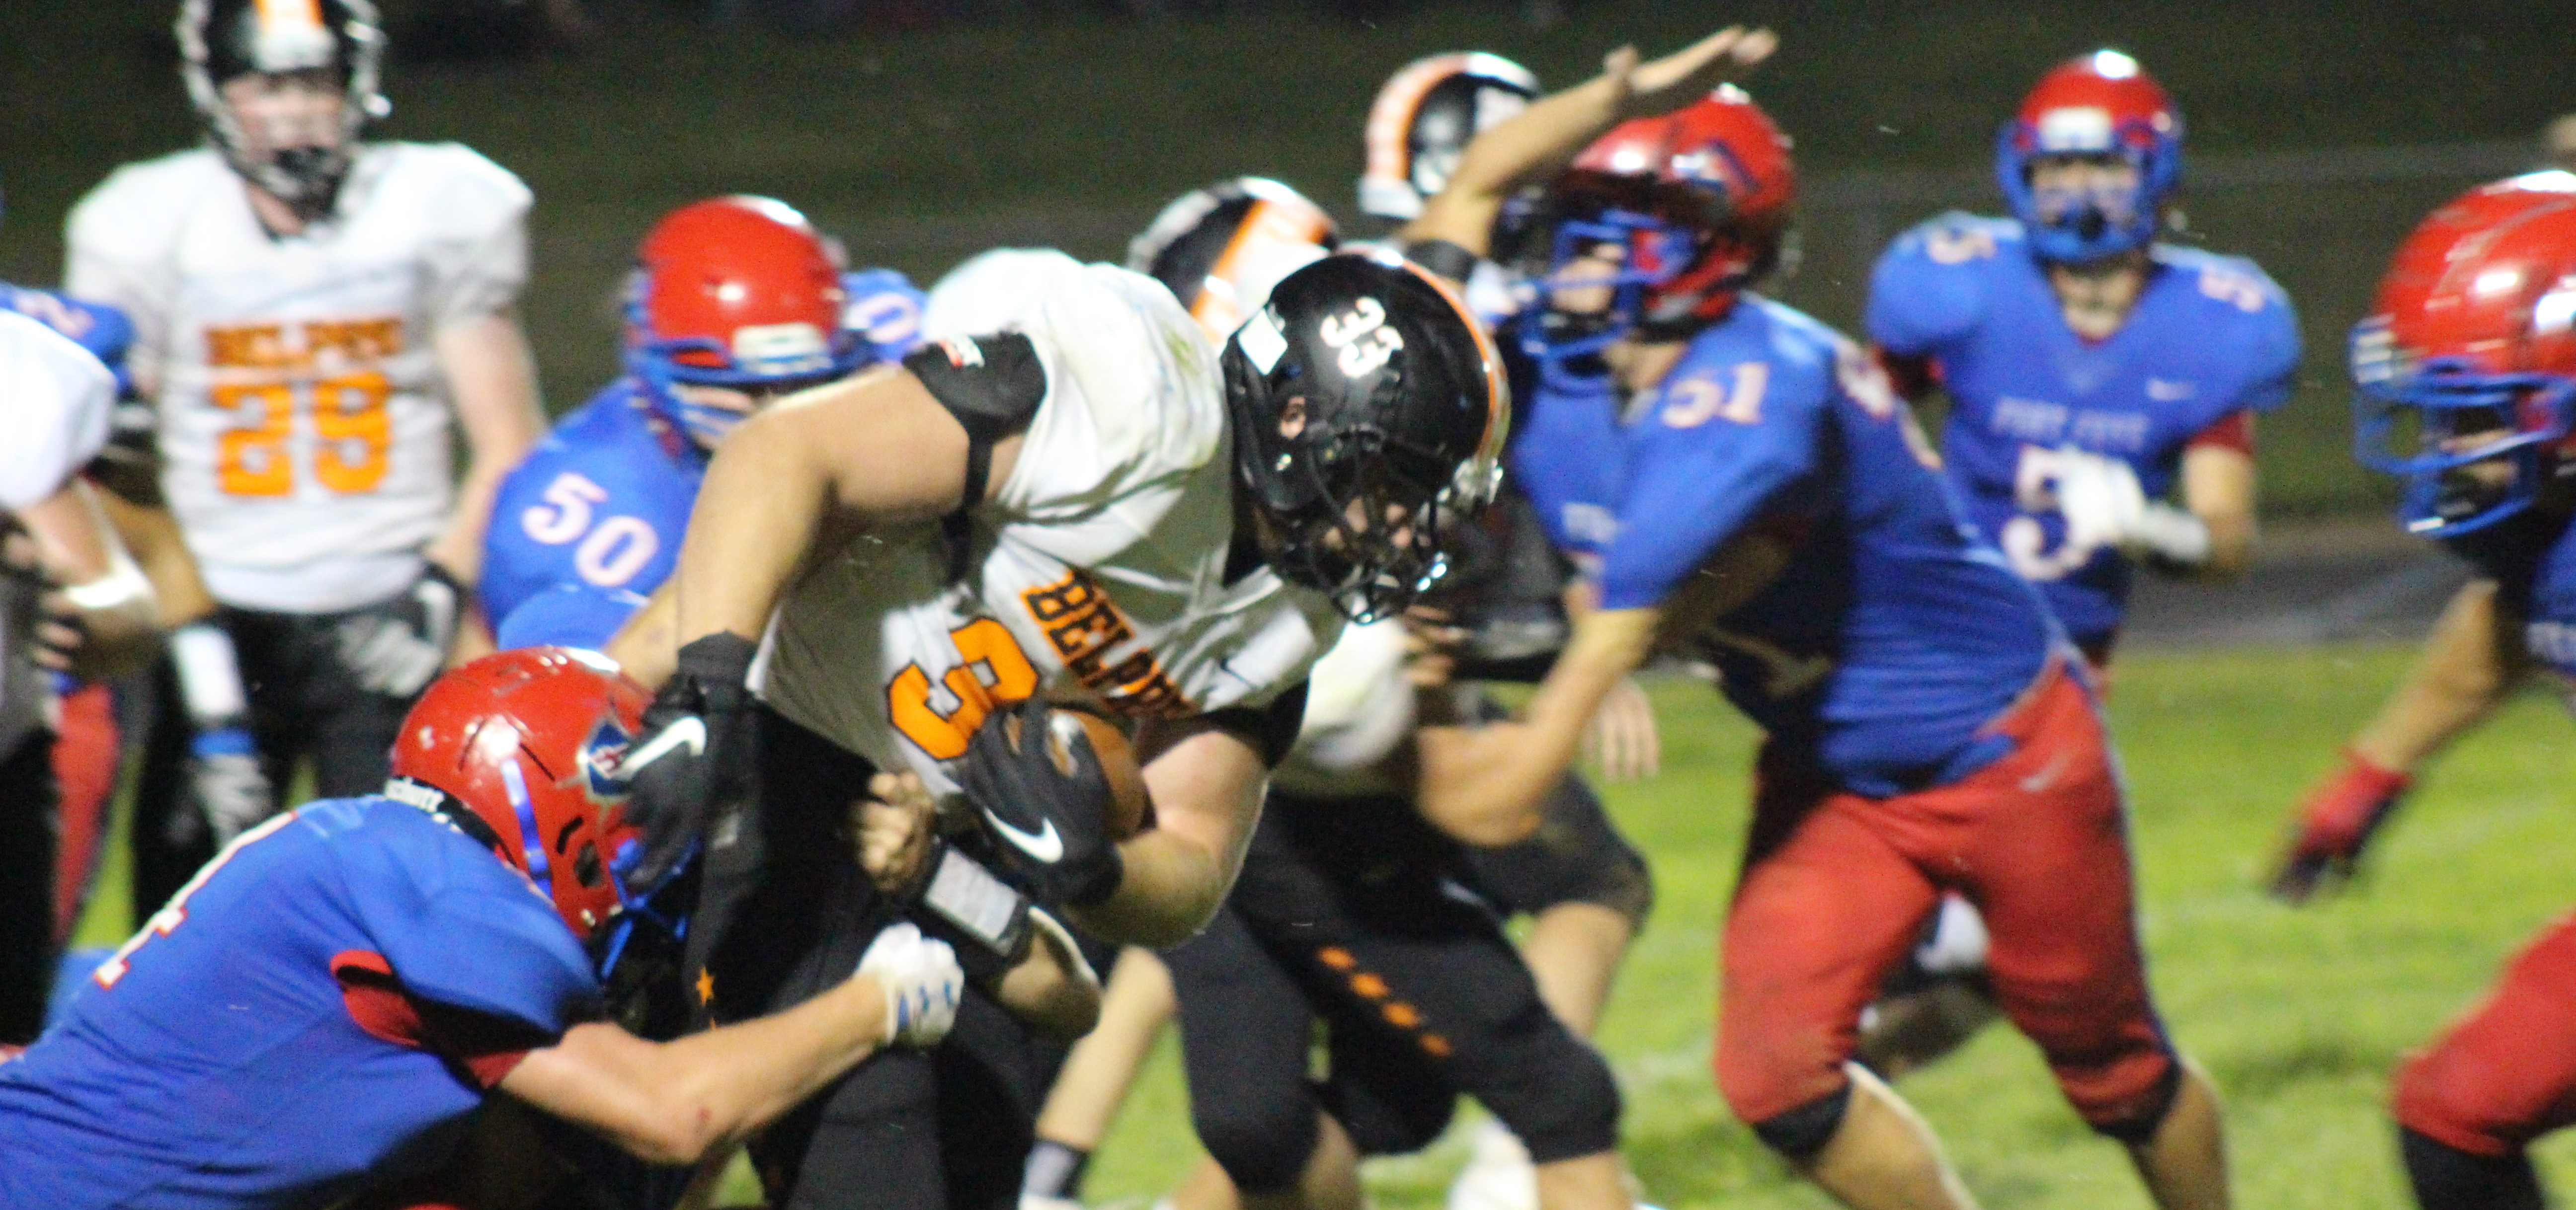 Belpre back fights through tackle